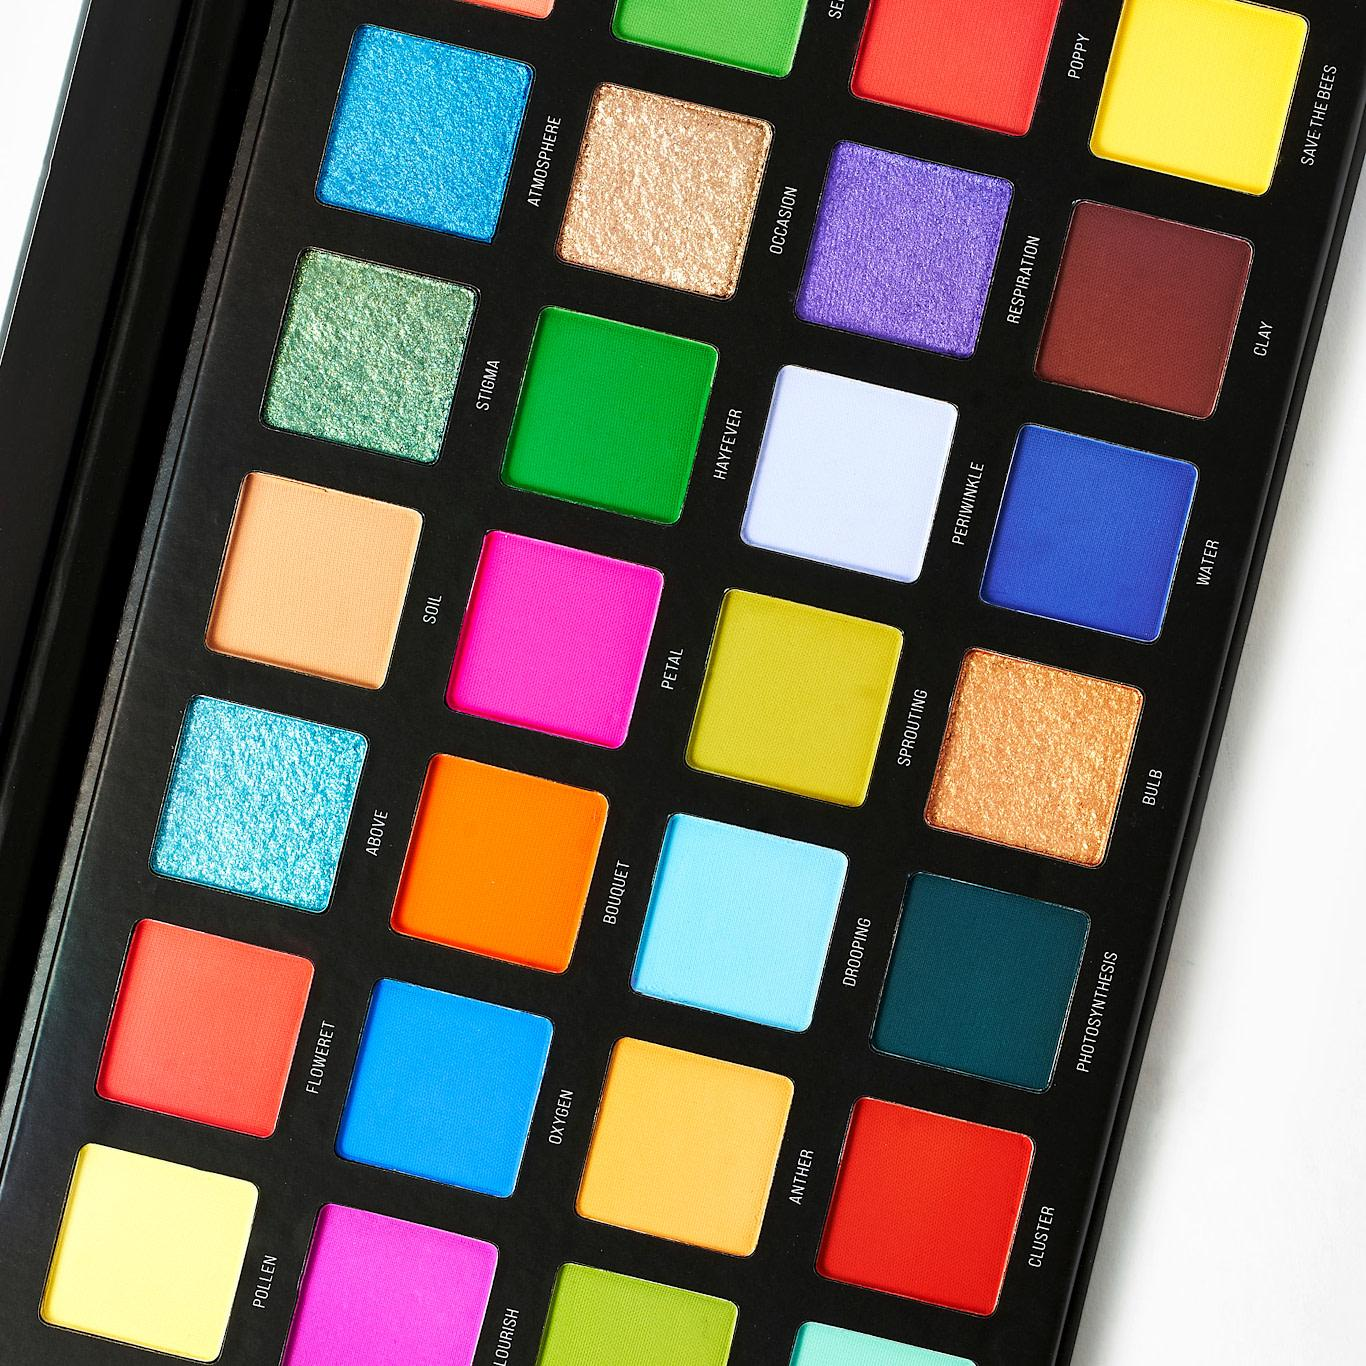 Sample Beauty The Blooming Lovely Palette Open Closer